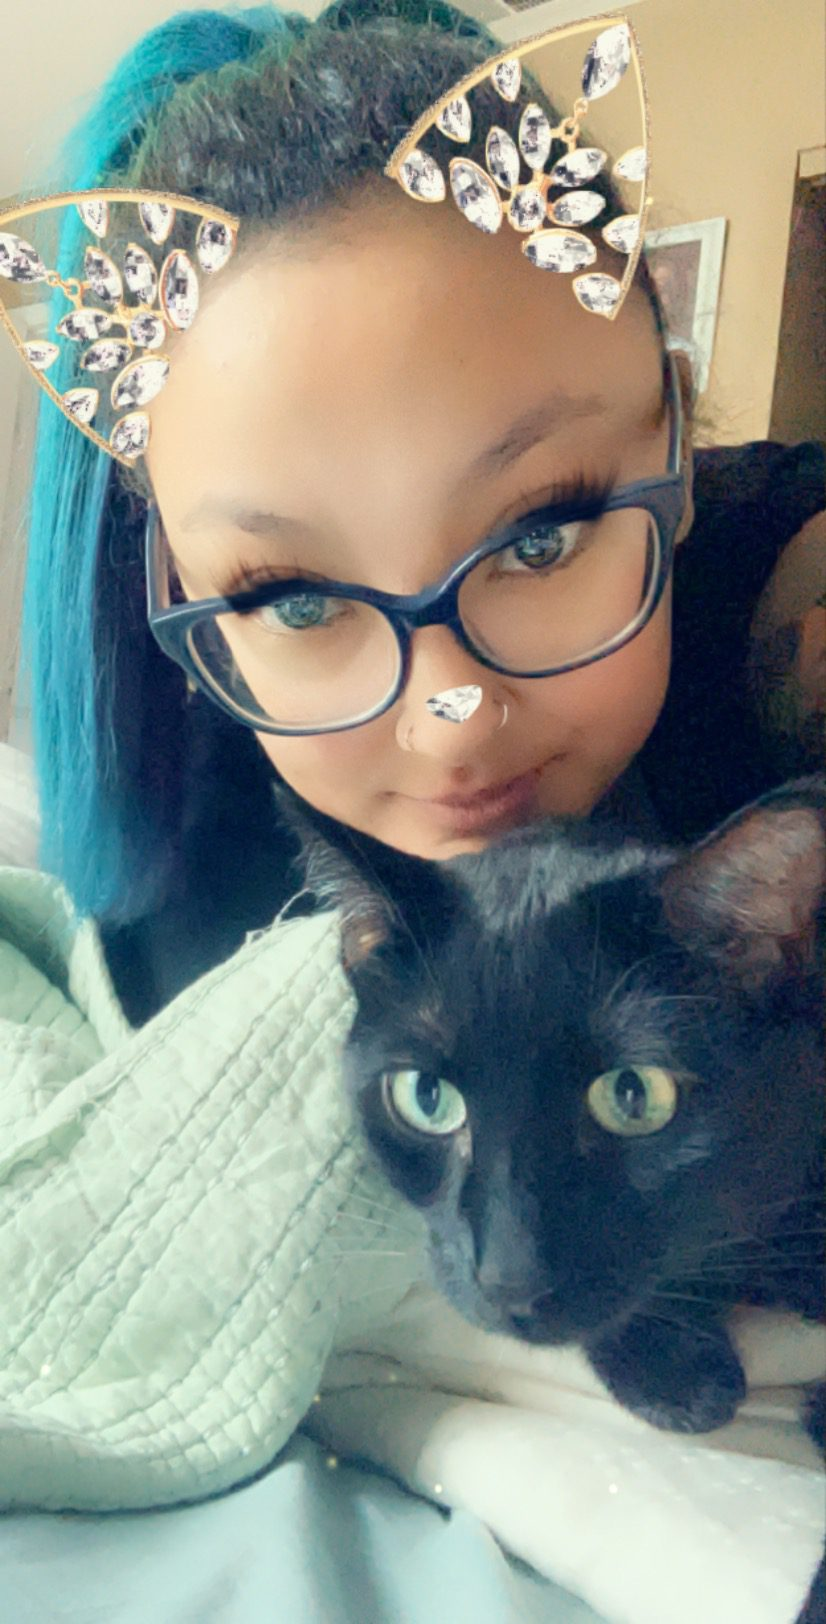 trusted cat sitter, About Us, The Comforted Kitty